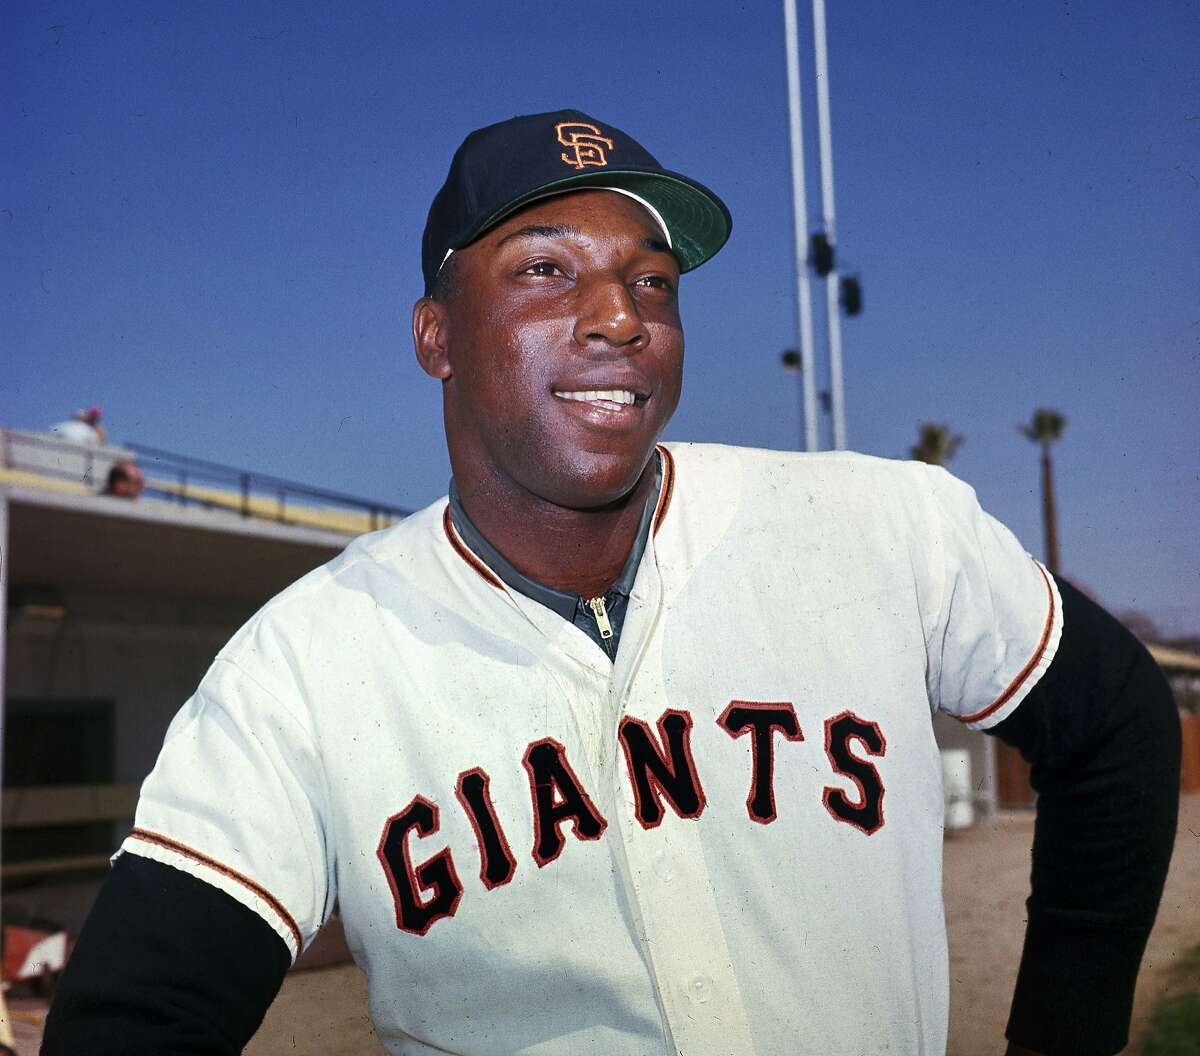 """FILE - In this April 1964 file photo, San Francisco Giants' Willie McCovey poses for a photo, date and location not known. McCovey, the sweet-swinging Hall of Famer nicknamed """"Stretch"""" for his 6-foot-4 height and those long arms, has died. He was 80. The San Francisco Giants announced his death, saying the fearsome hitter passed """"peacefully"""" Wednesday afternoon, Oct. 31, 2018, """"after losing his battle with ongoing health issues."""" (AP Photo, File)"""